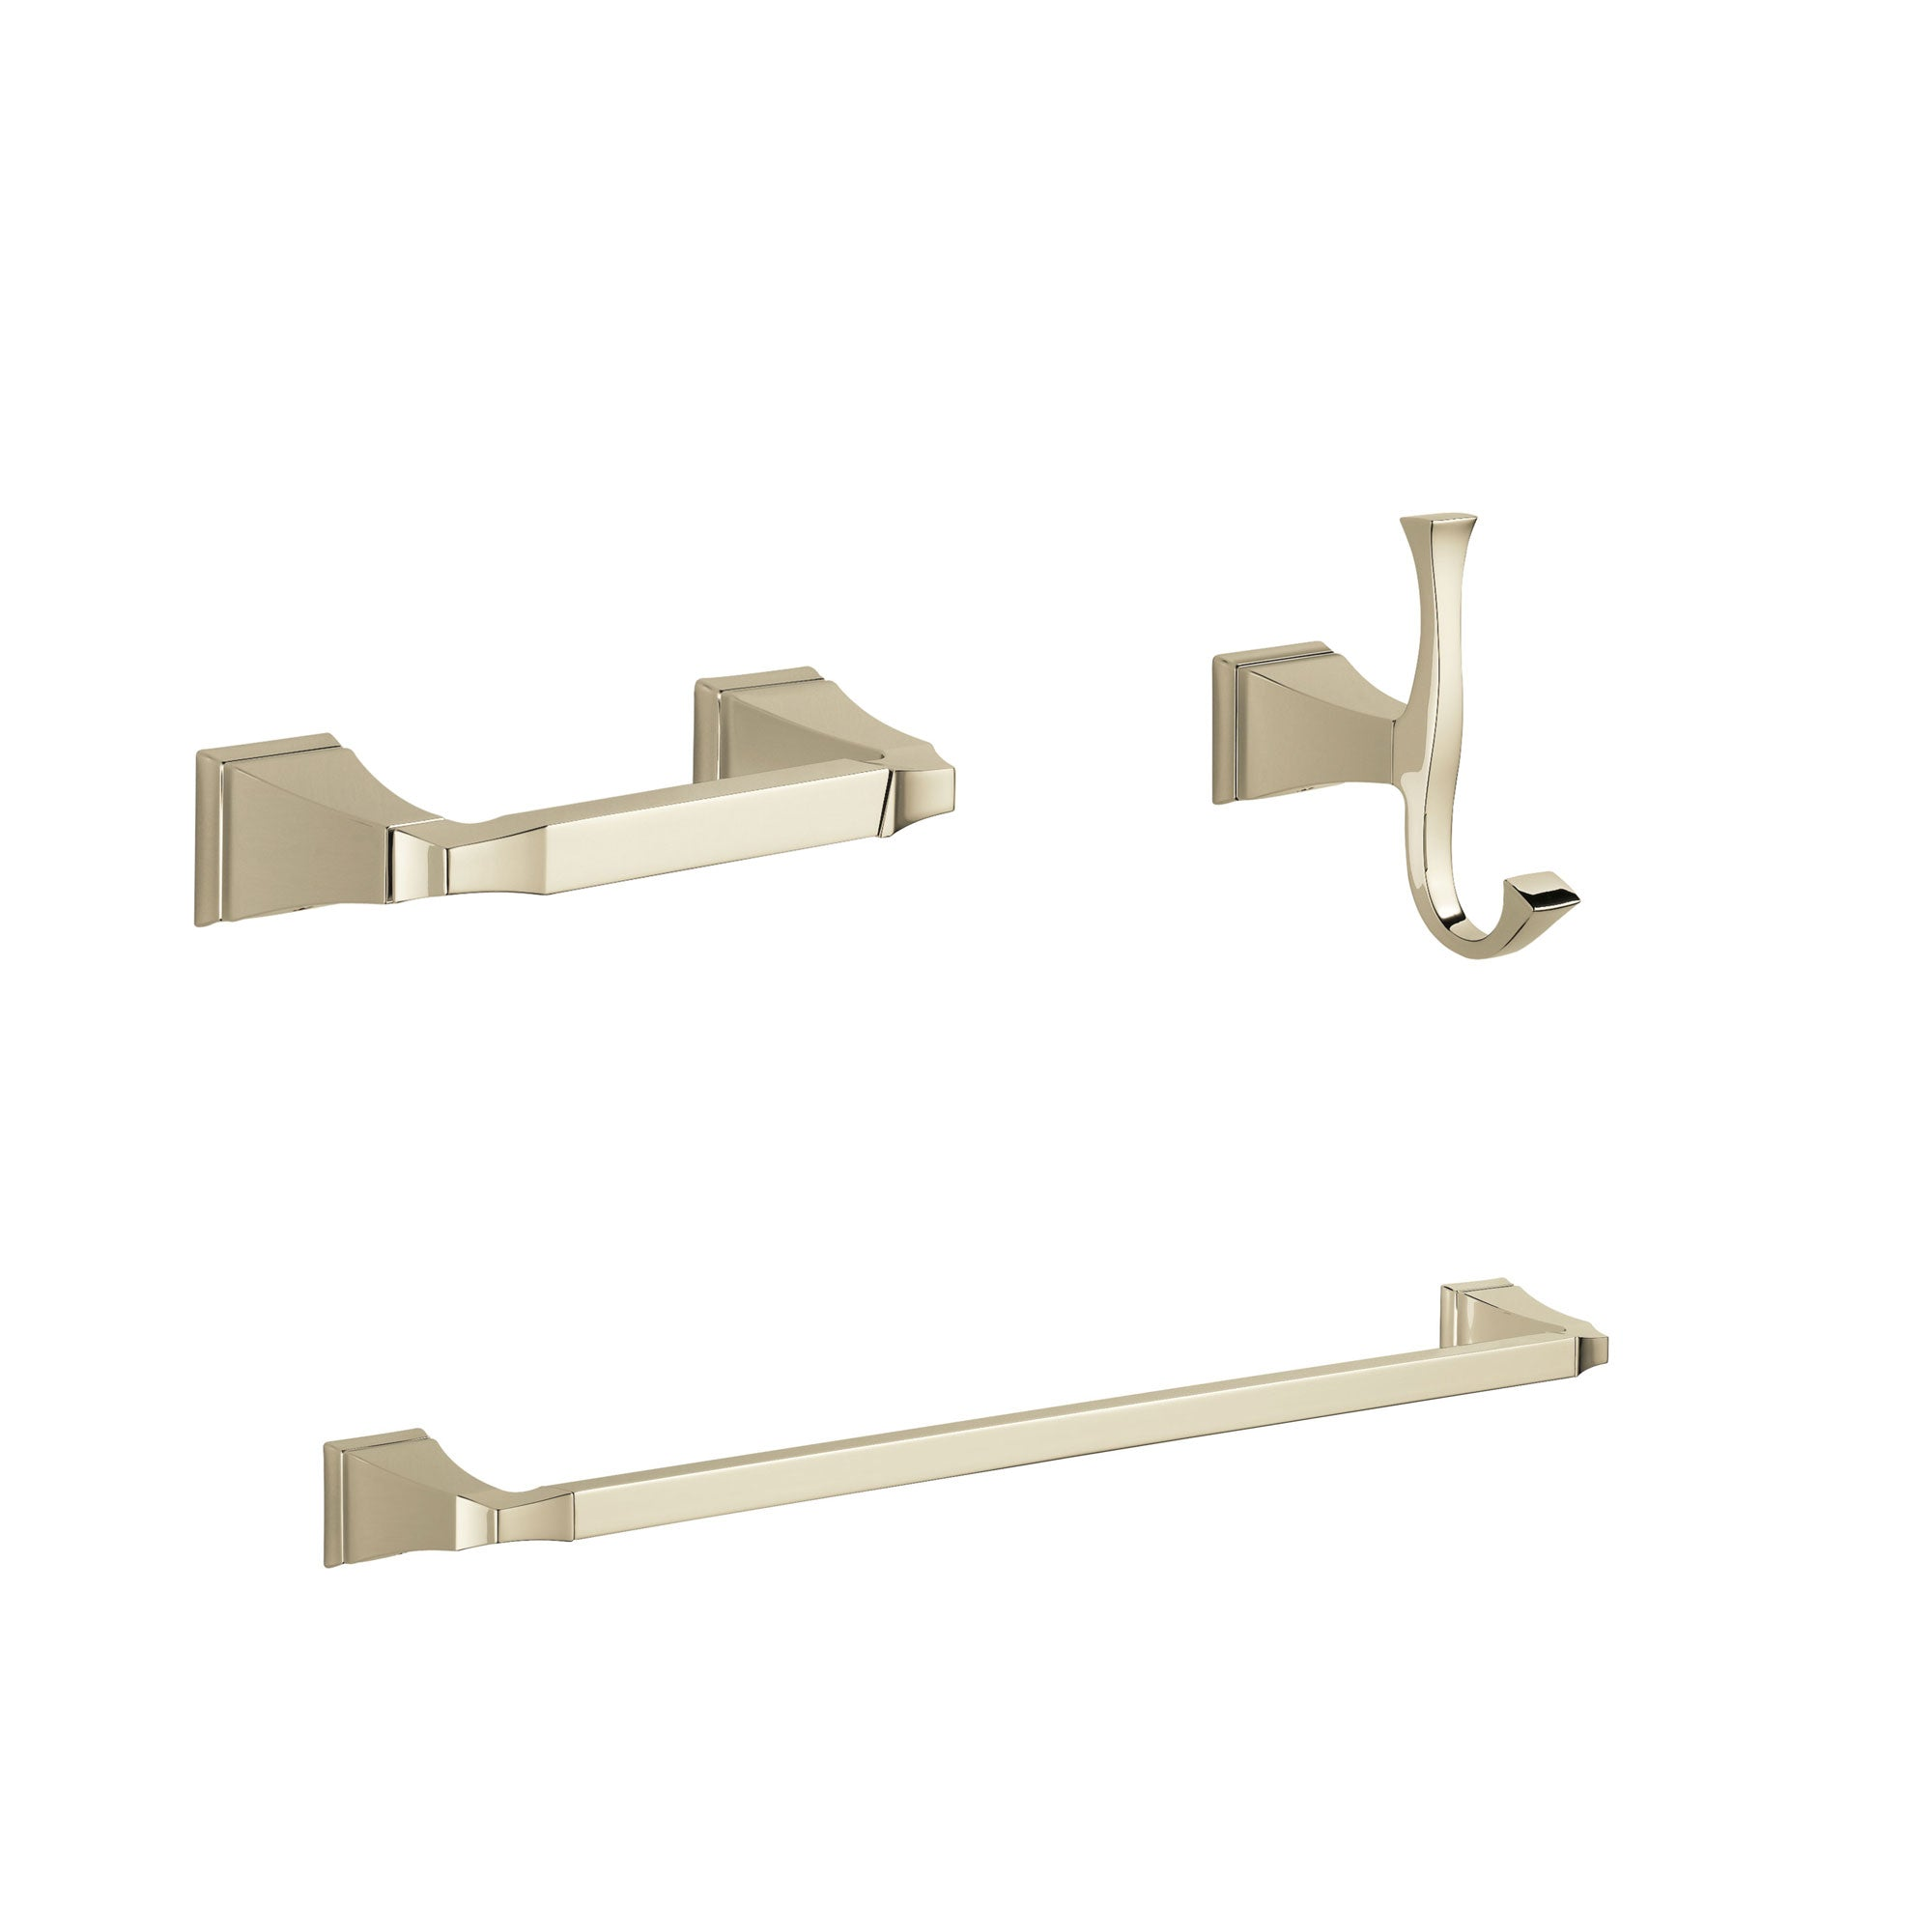 "Delta Dryden Polished Nickel BASICS Bathroom Accessory Set Includes: 24"" Towel Bar, Toilet Paper Holder, and Robe Hook D10037AP"